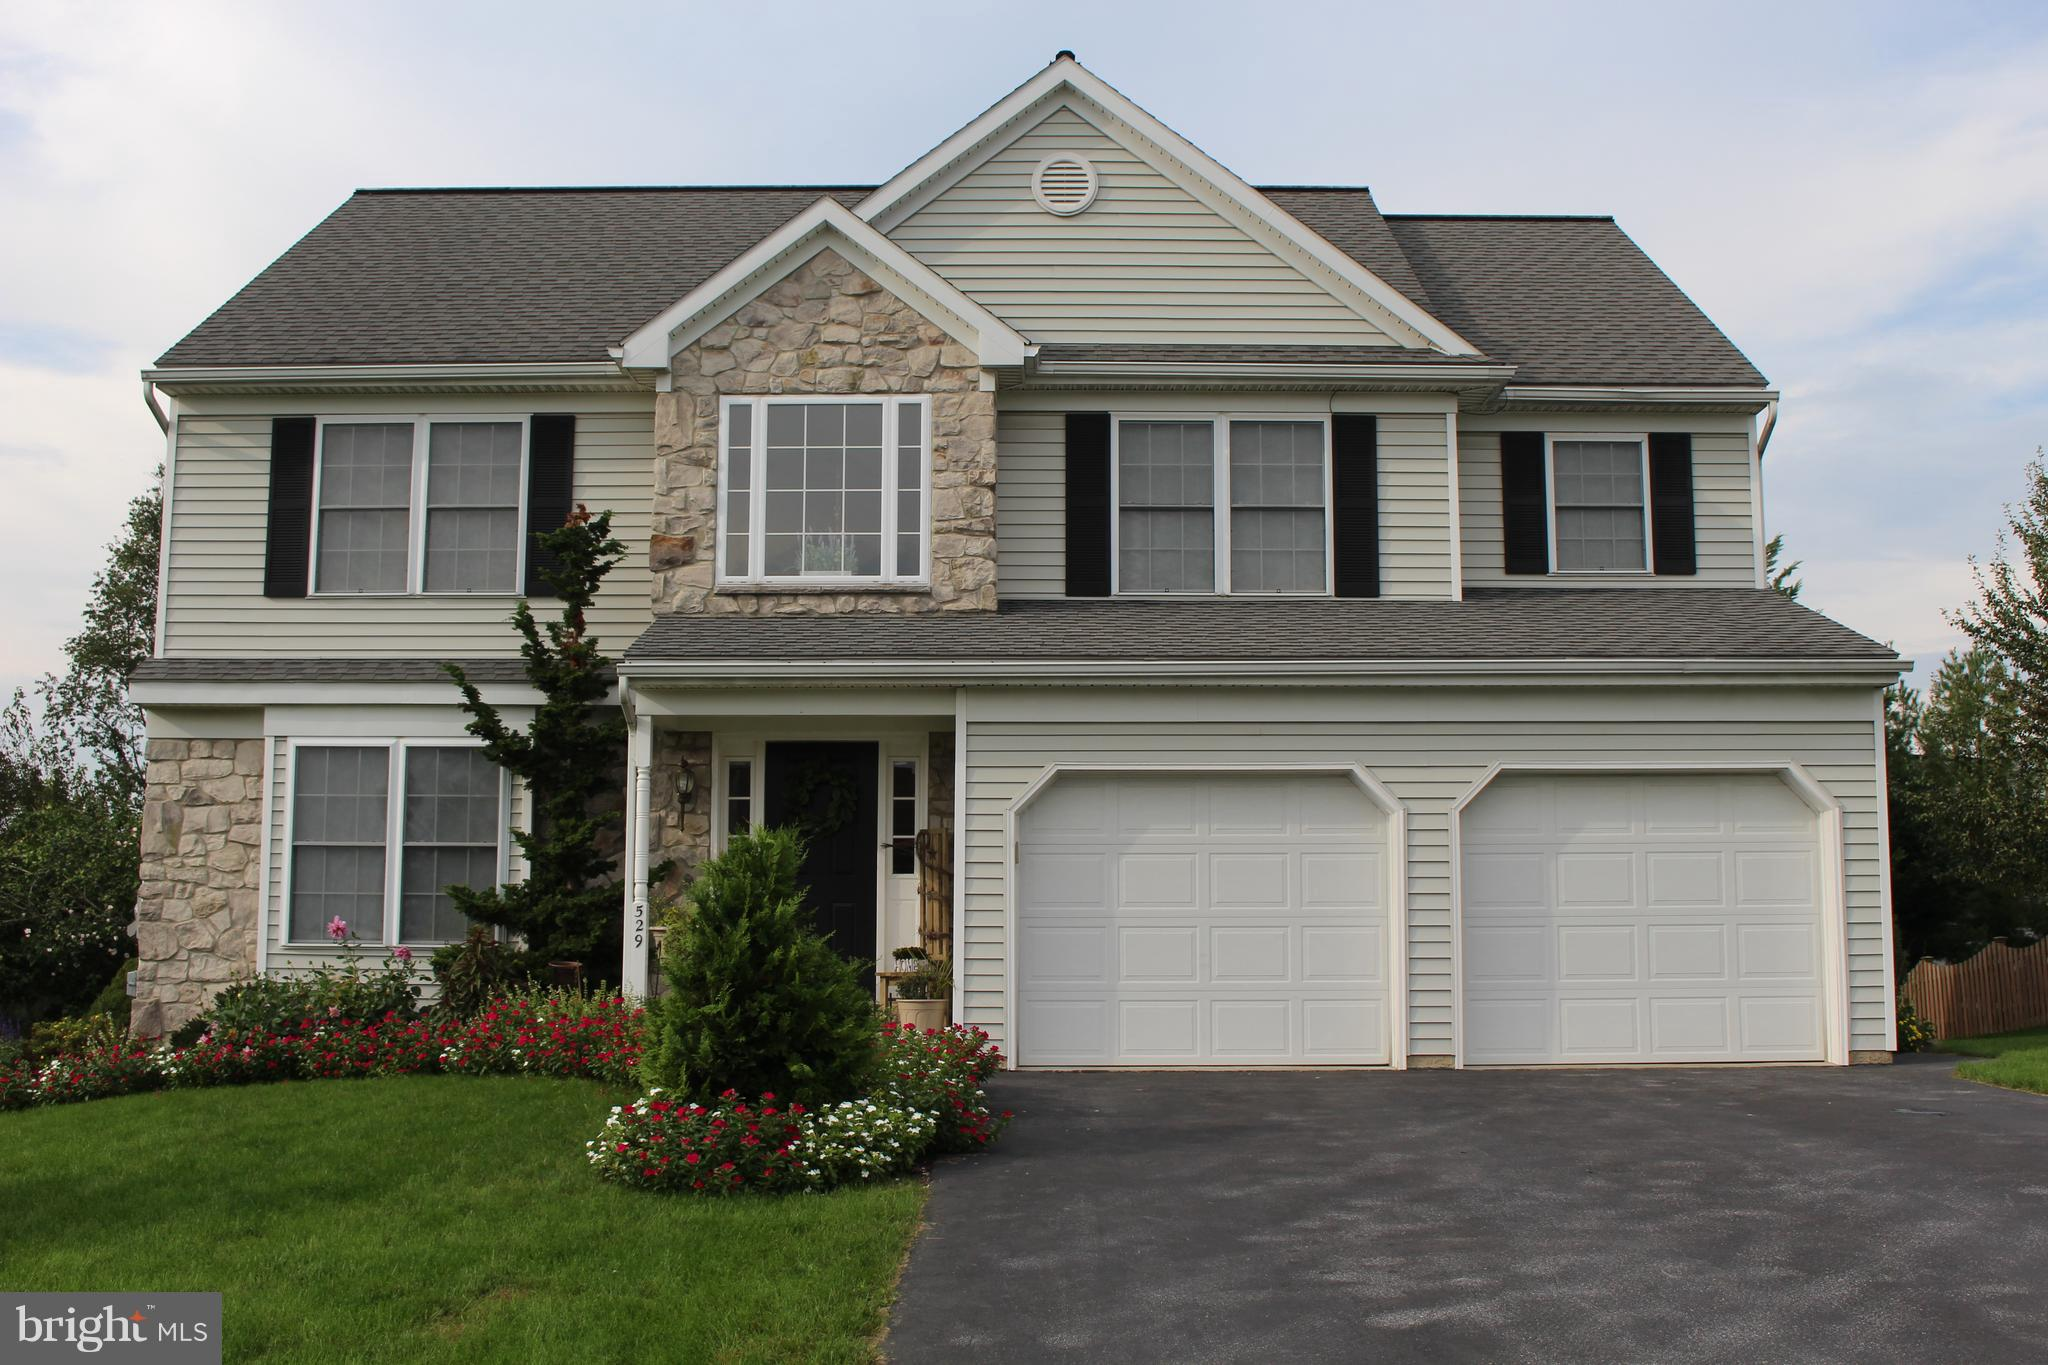 529 SPRING HOLLOW DRIVE, NEW HOLLAND, PA 17557